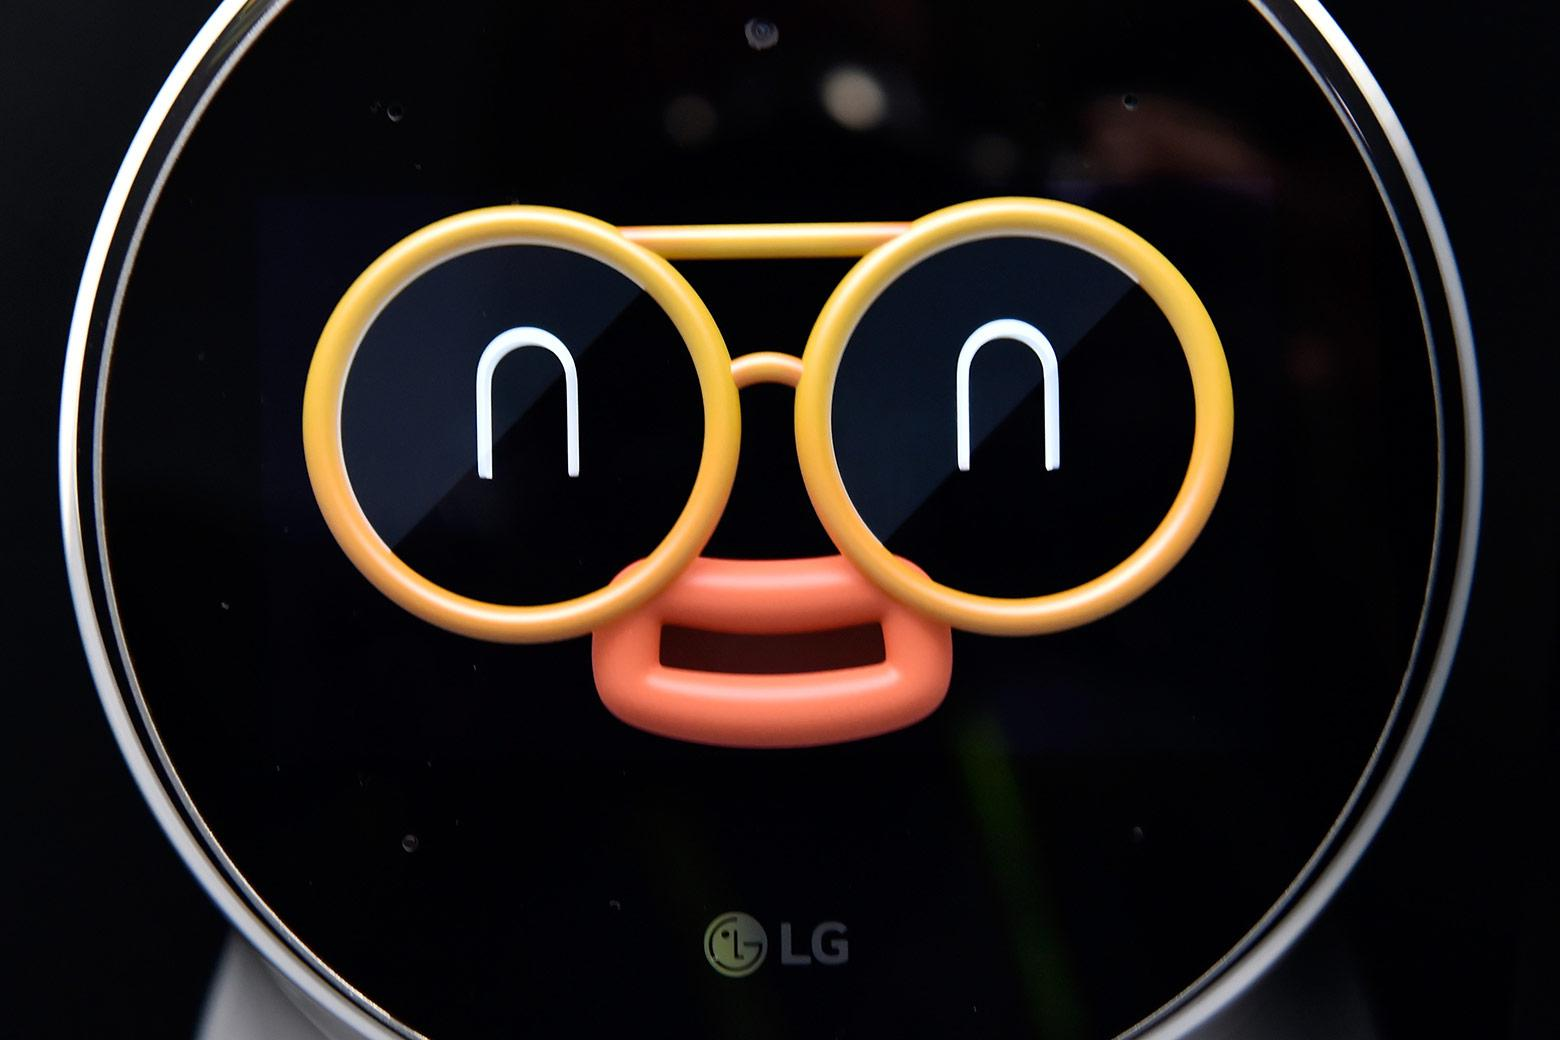 The cartoonish face of LG's Cloi personal assistant robot.